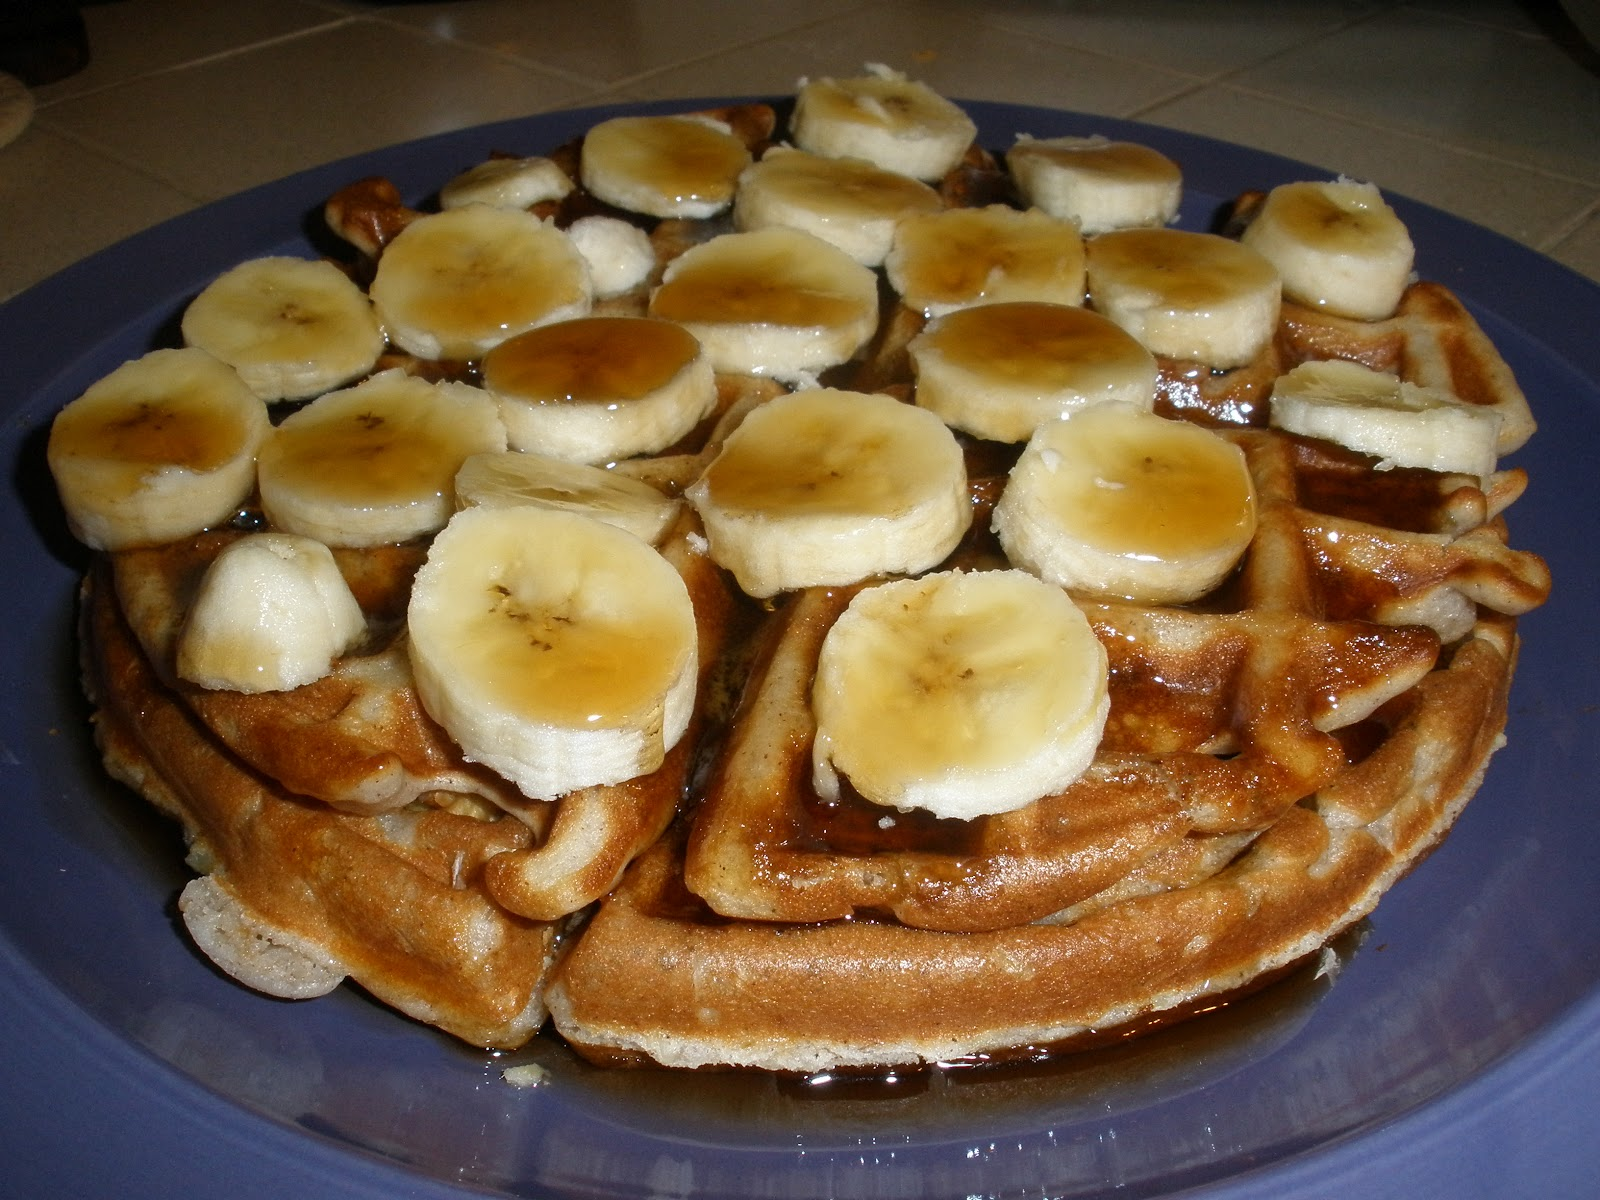 My Glorious Kitchen: Banana Nut Waffles